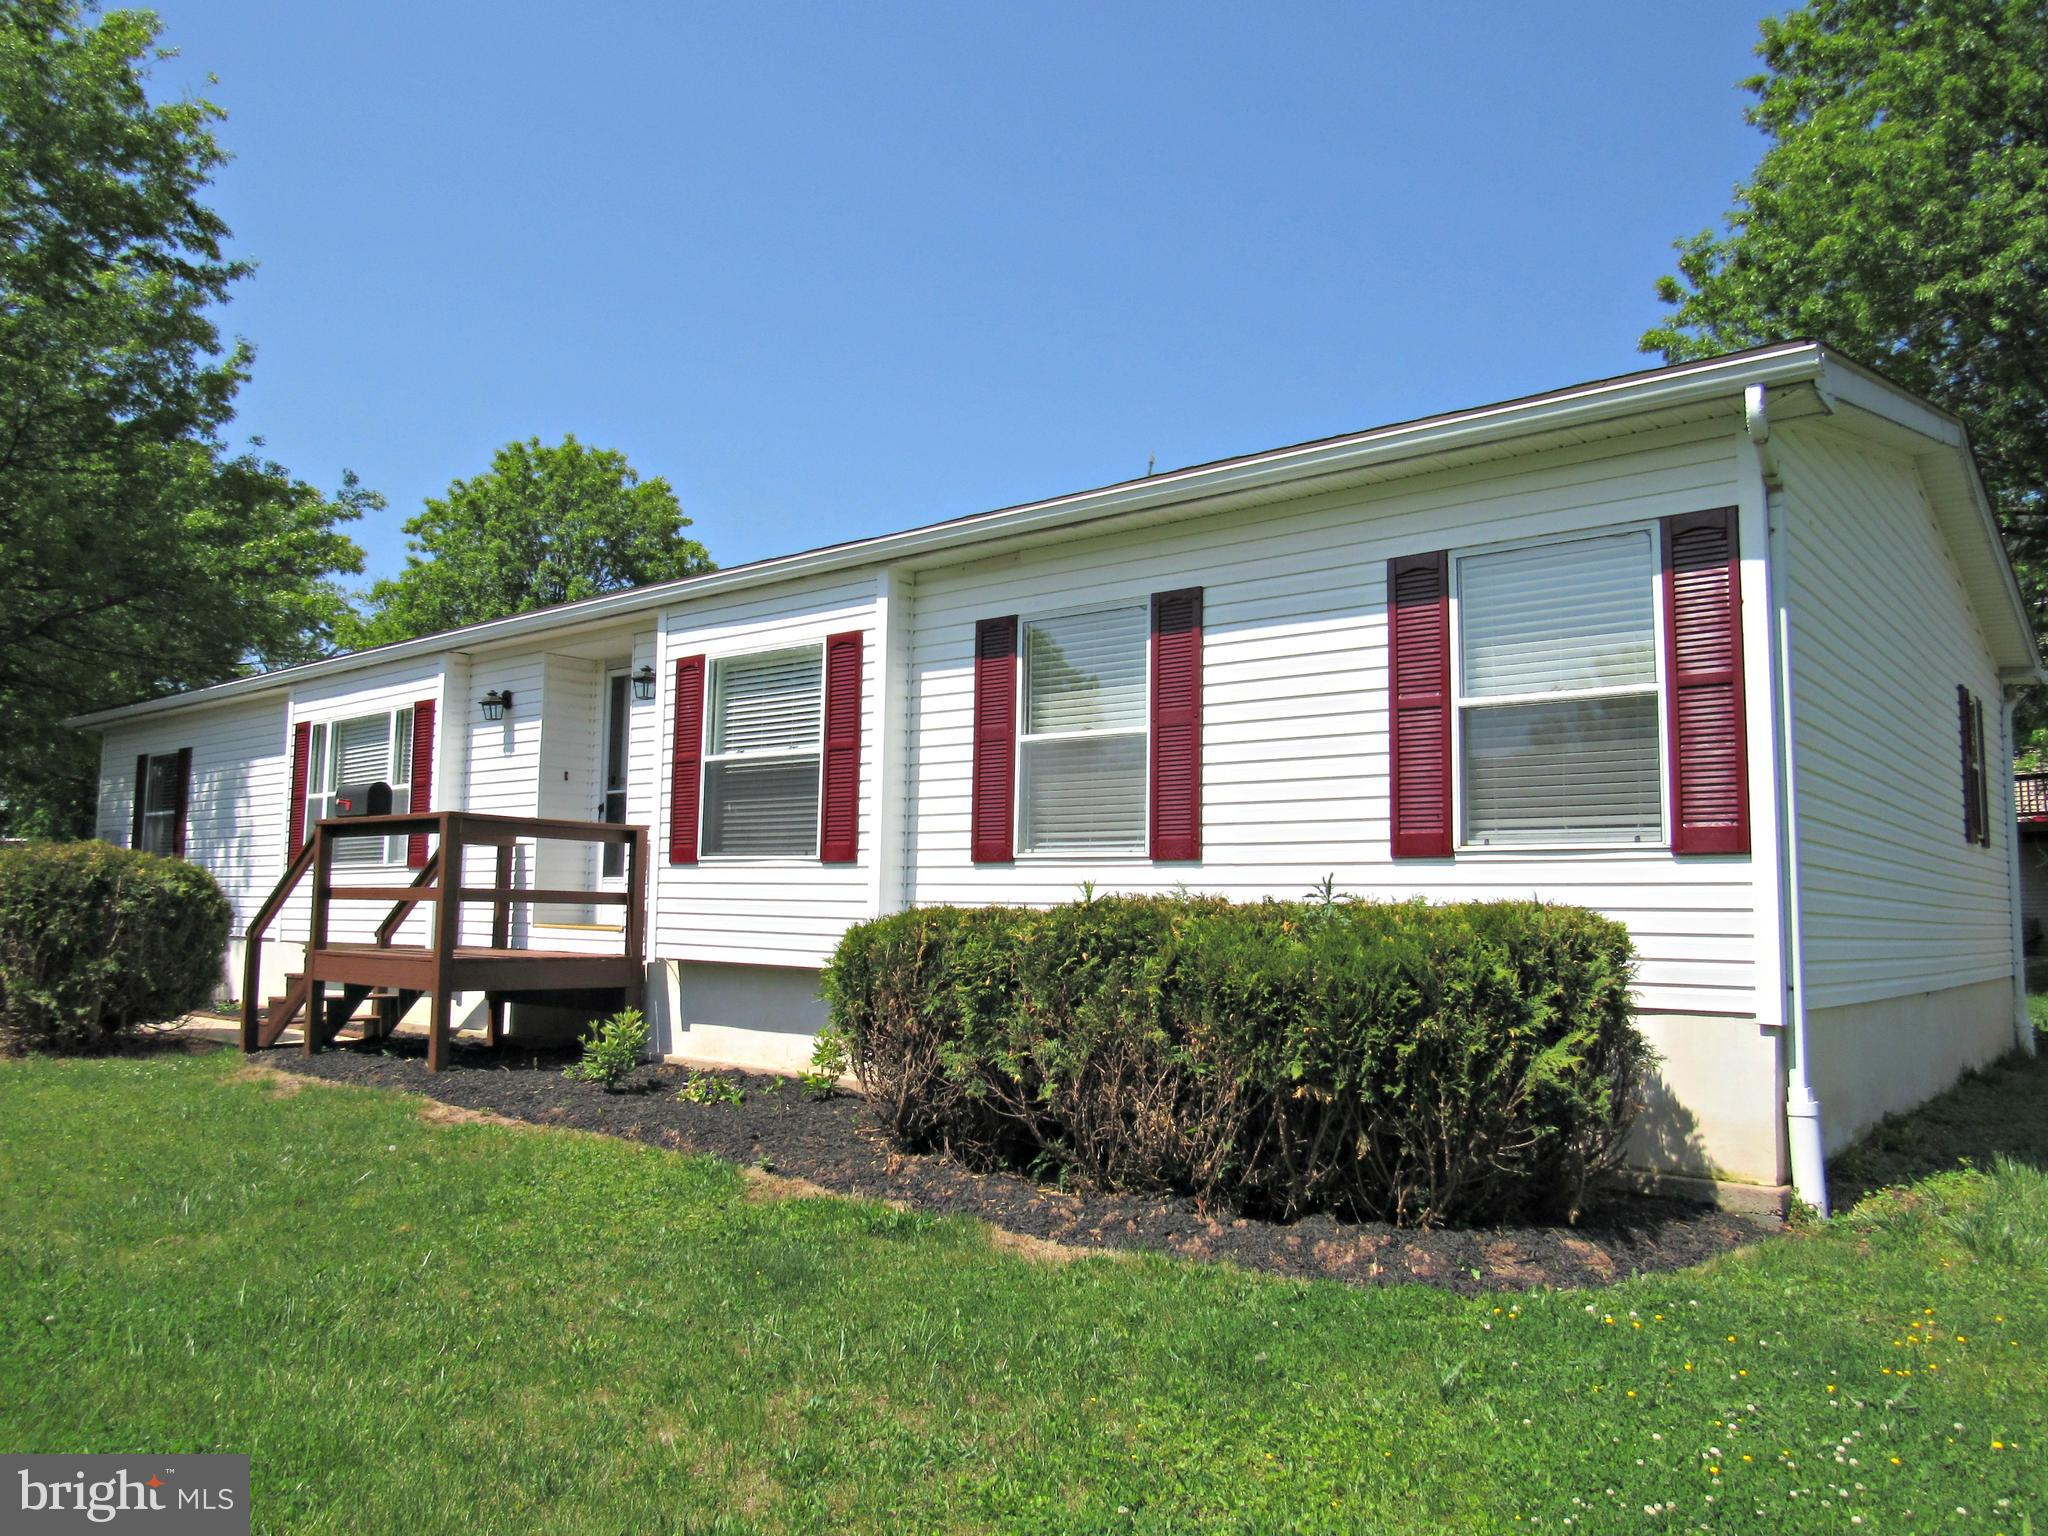 What an opportunity in Red Hill Estates 55+ community.  This home is in move in condition with new carpet and paint.  The master bedroom suite has walk-in closet and gorgeous new master bath with large shower.  Great open floor plan with a great room that offers breakfast area, living room and dining room w/extra sink and cabinetry for entertaining.  Very spacious kitchen with plenty of cabinets.  Laundry room with washer and dryer included. The property is on of the larger lots in the community.  Close to Montgomery Parks and trails.  Lot rent is $610 per month.